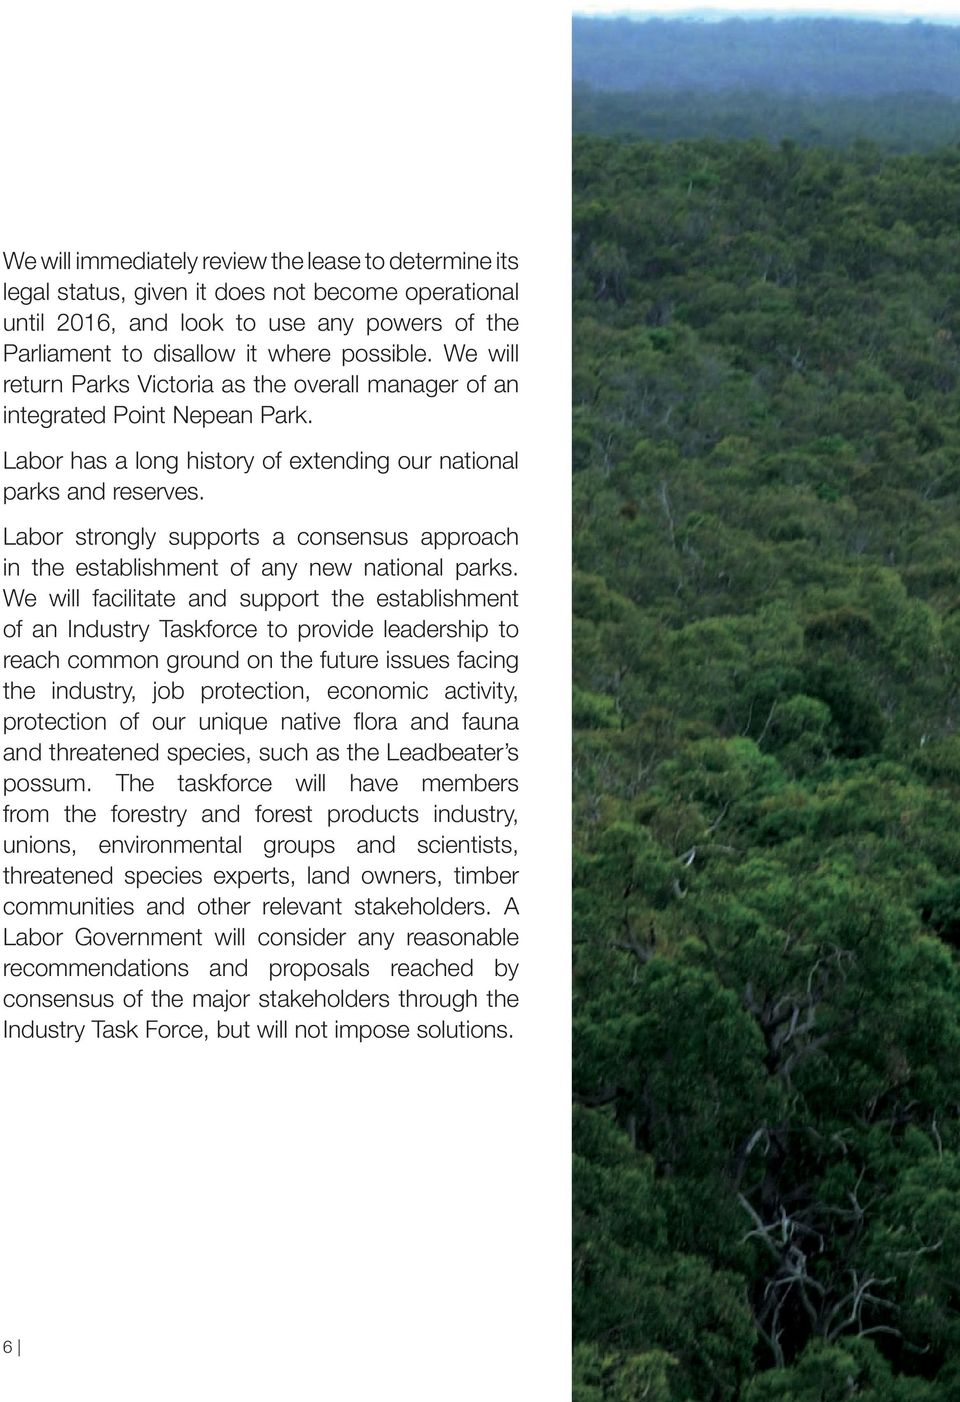 Labor strongly supports a consensus approach in the establishment of any new national parks.